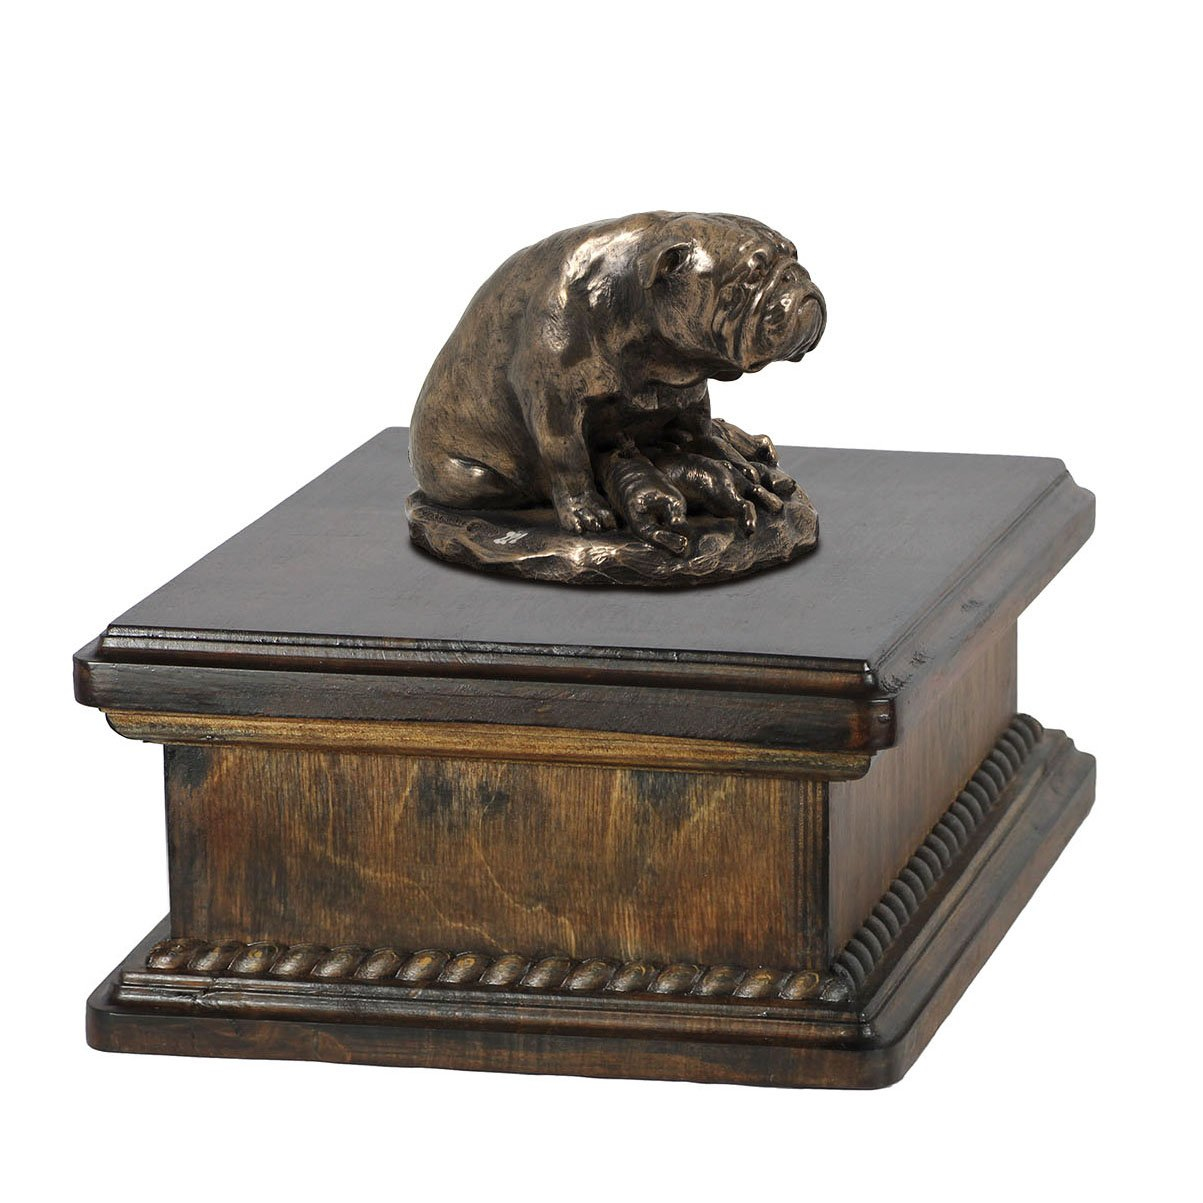 Bulldog (mama), memorial, urn for dog's ashes, with dog statue, exclusive, ArtDog